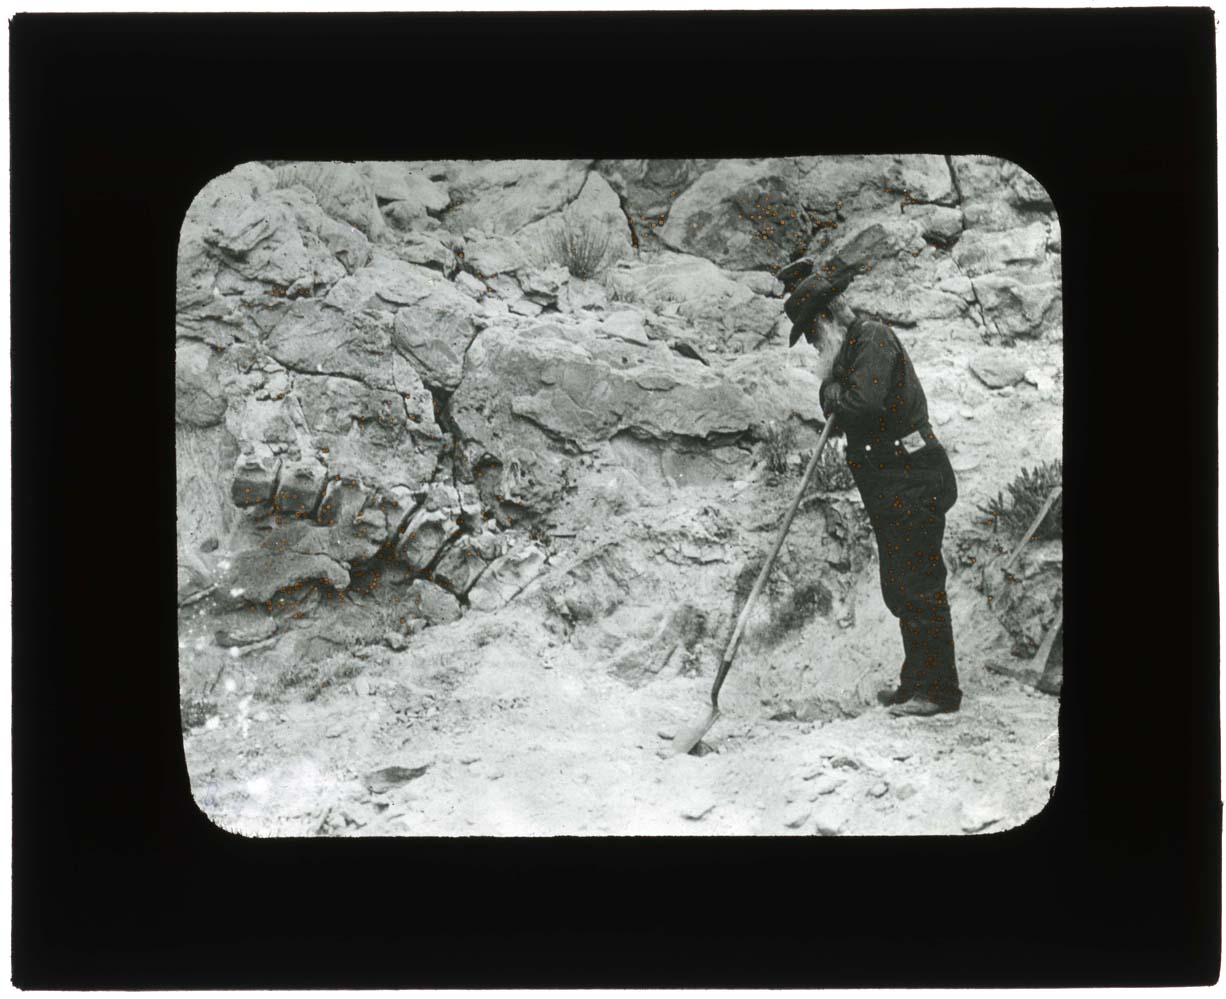 Discovery of fossils, Dinosaur National Monument, 1900-1935.